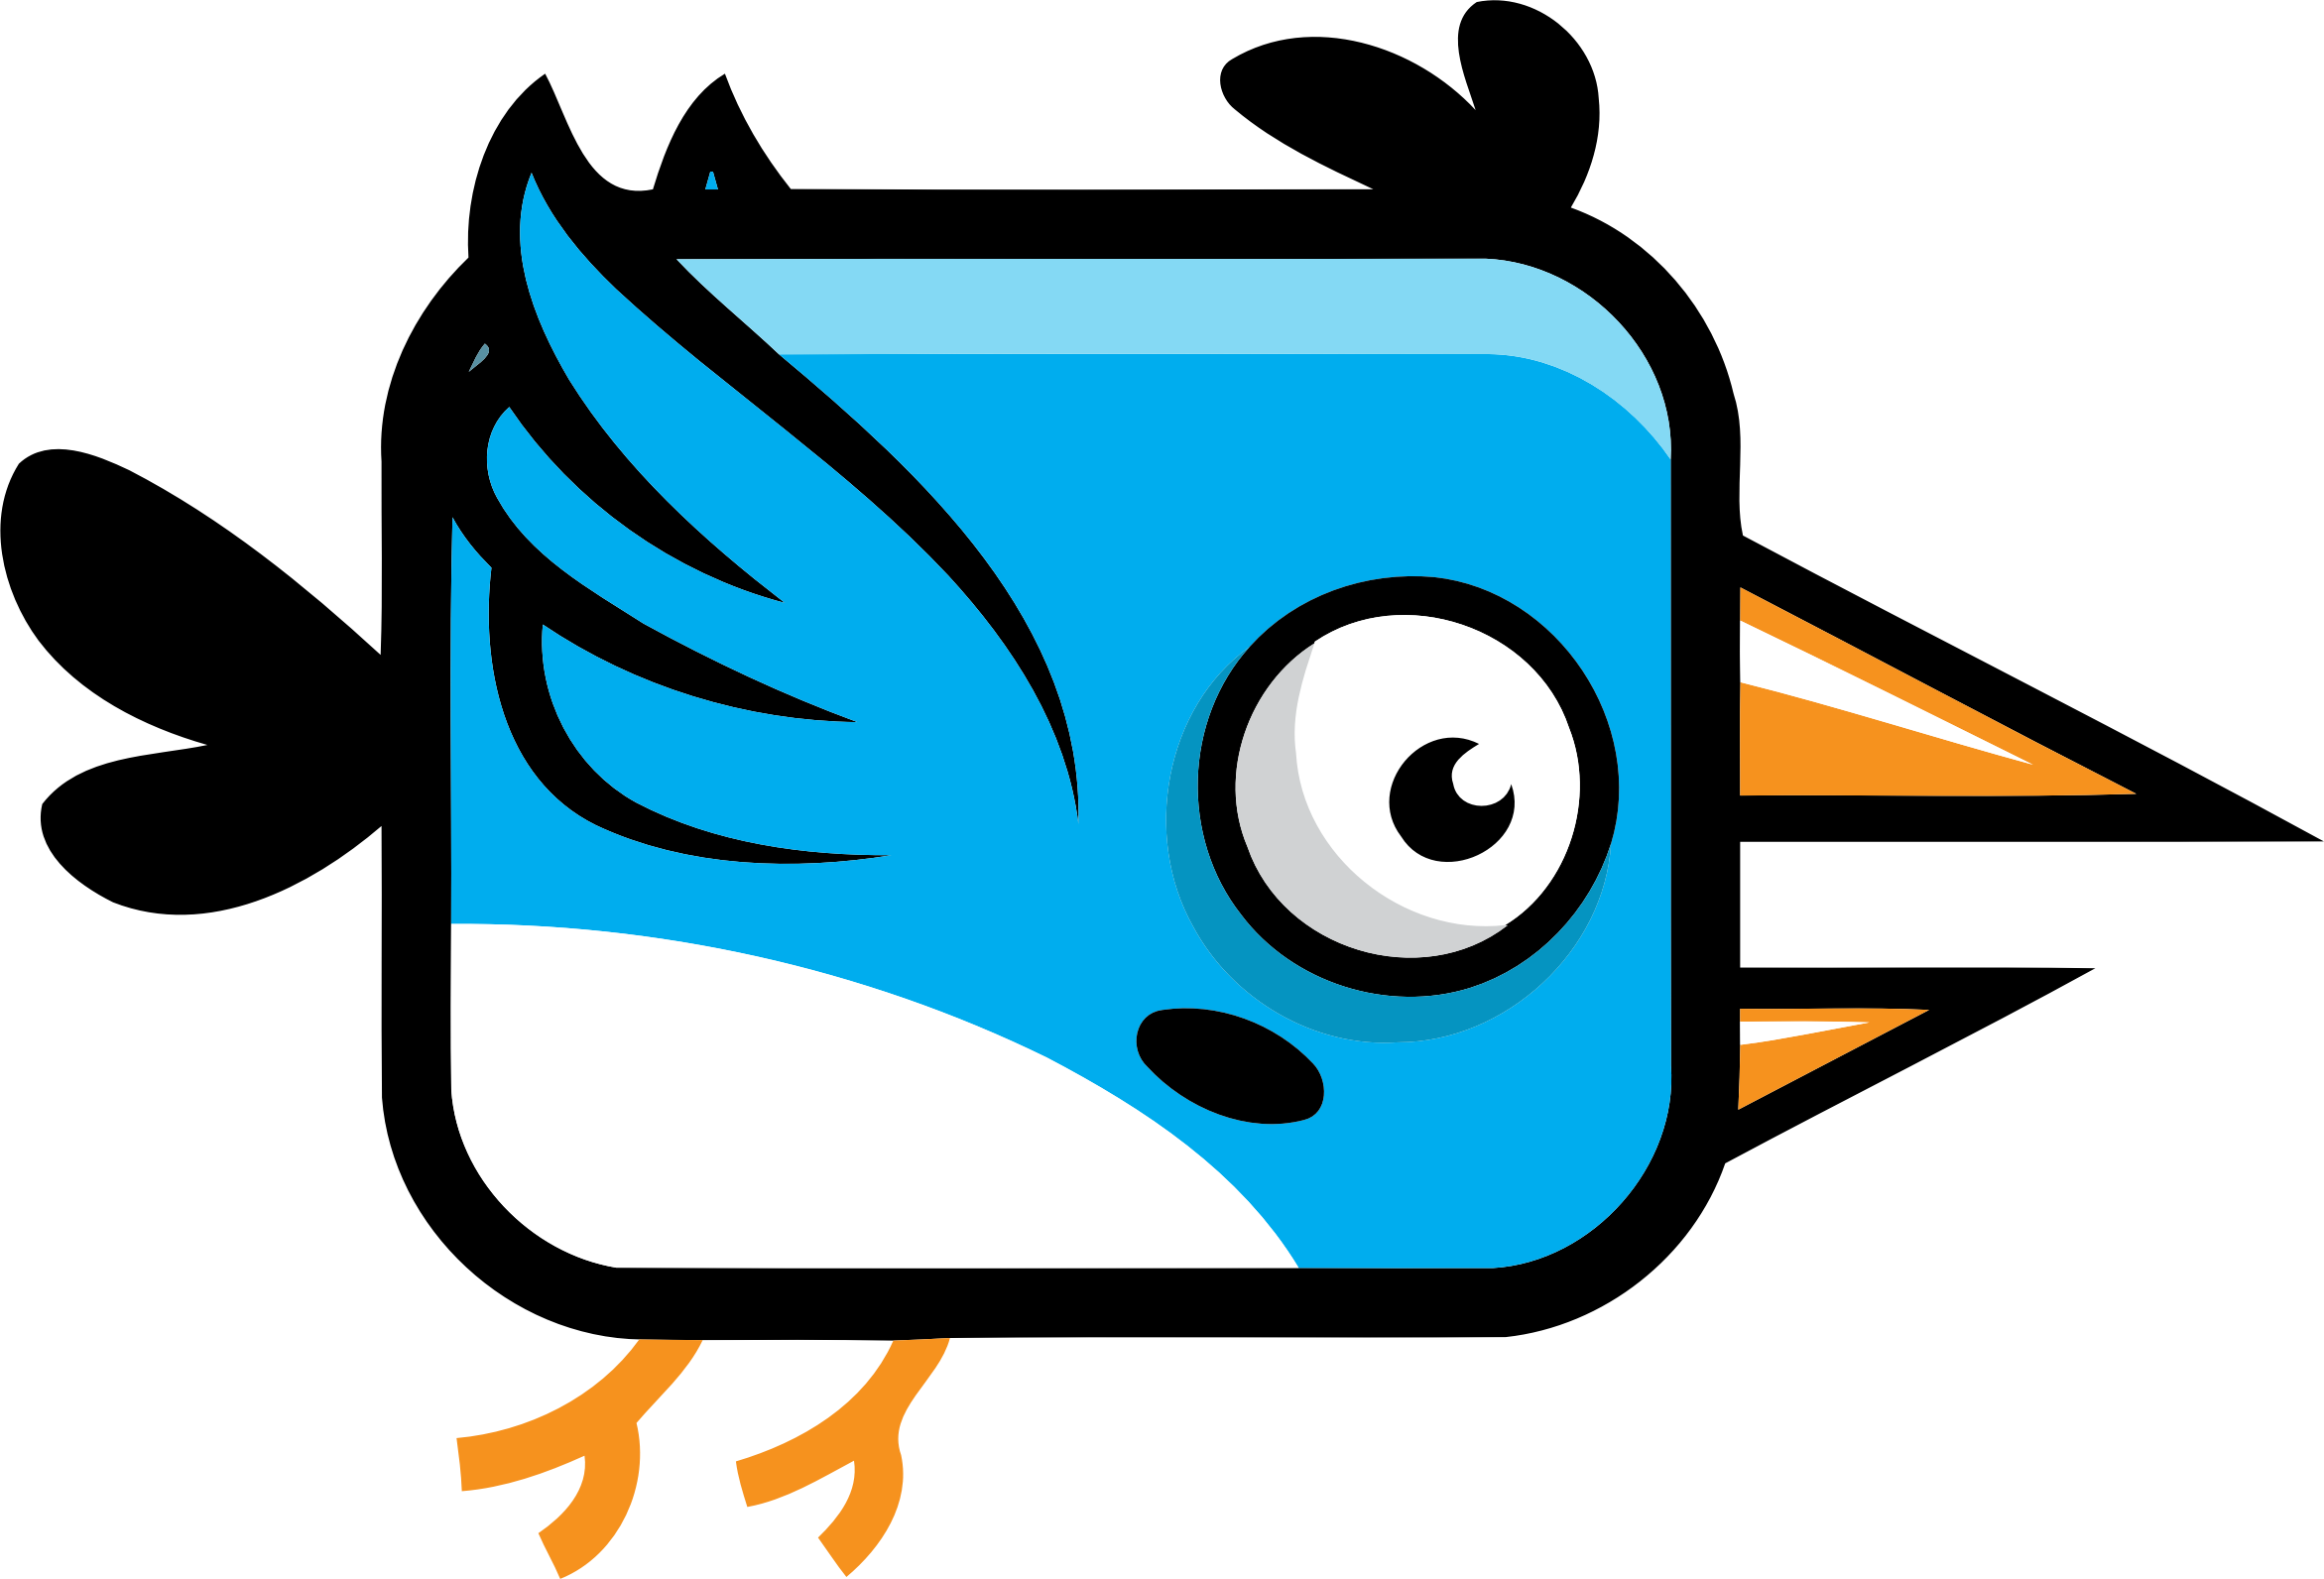 Bird sprite png. Flying frame icons free